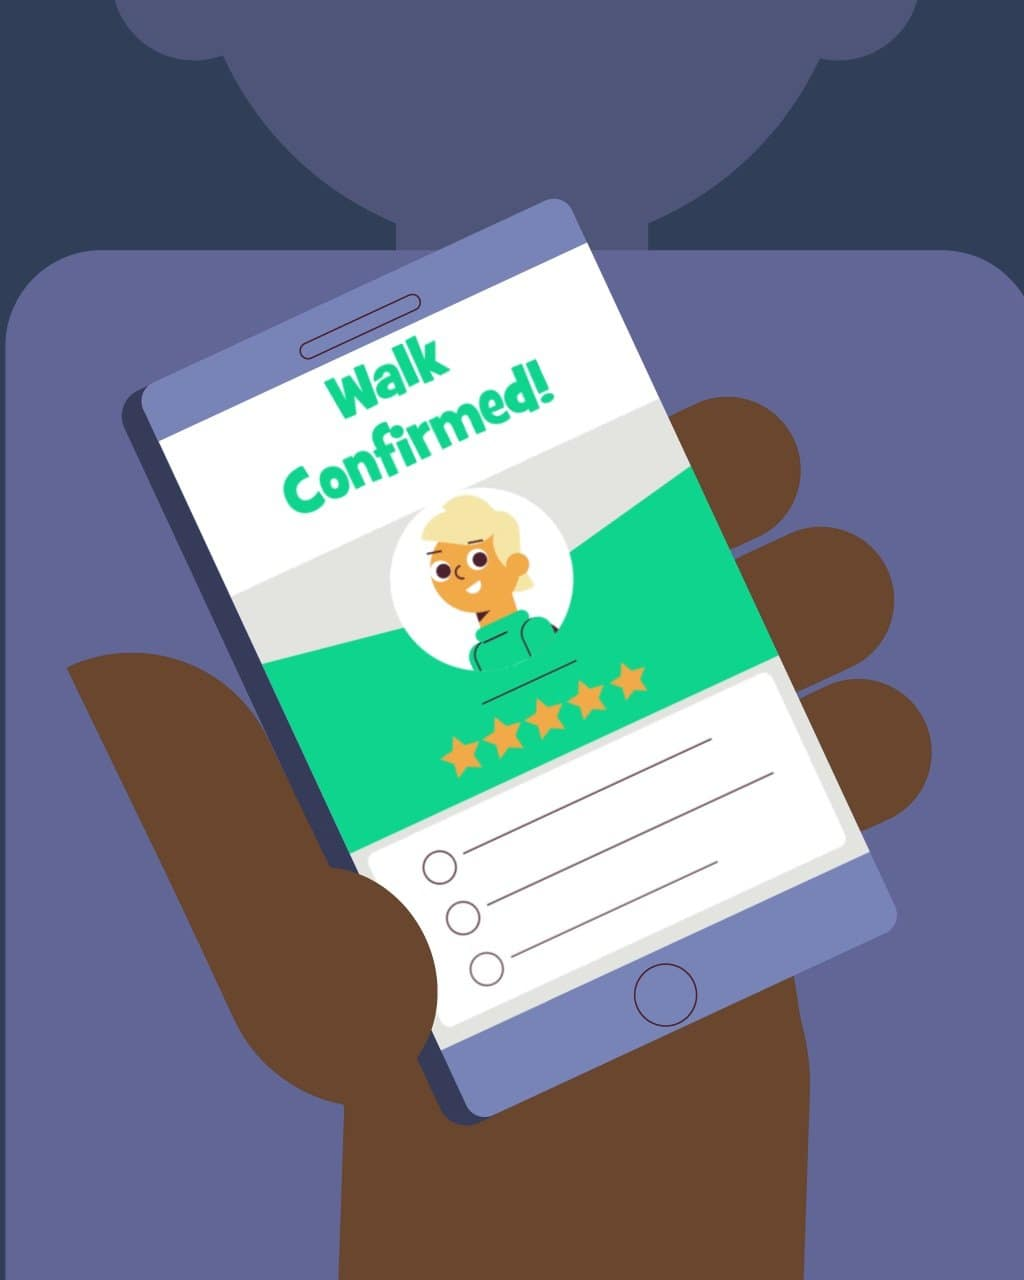 illustration for an explainer video animation made for Wag, a dog walking service. It shows someone using Wag's service through their app